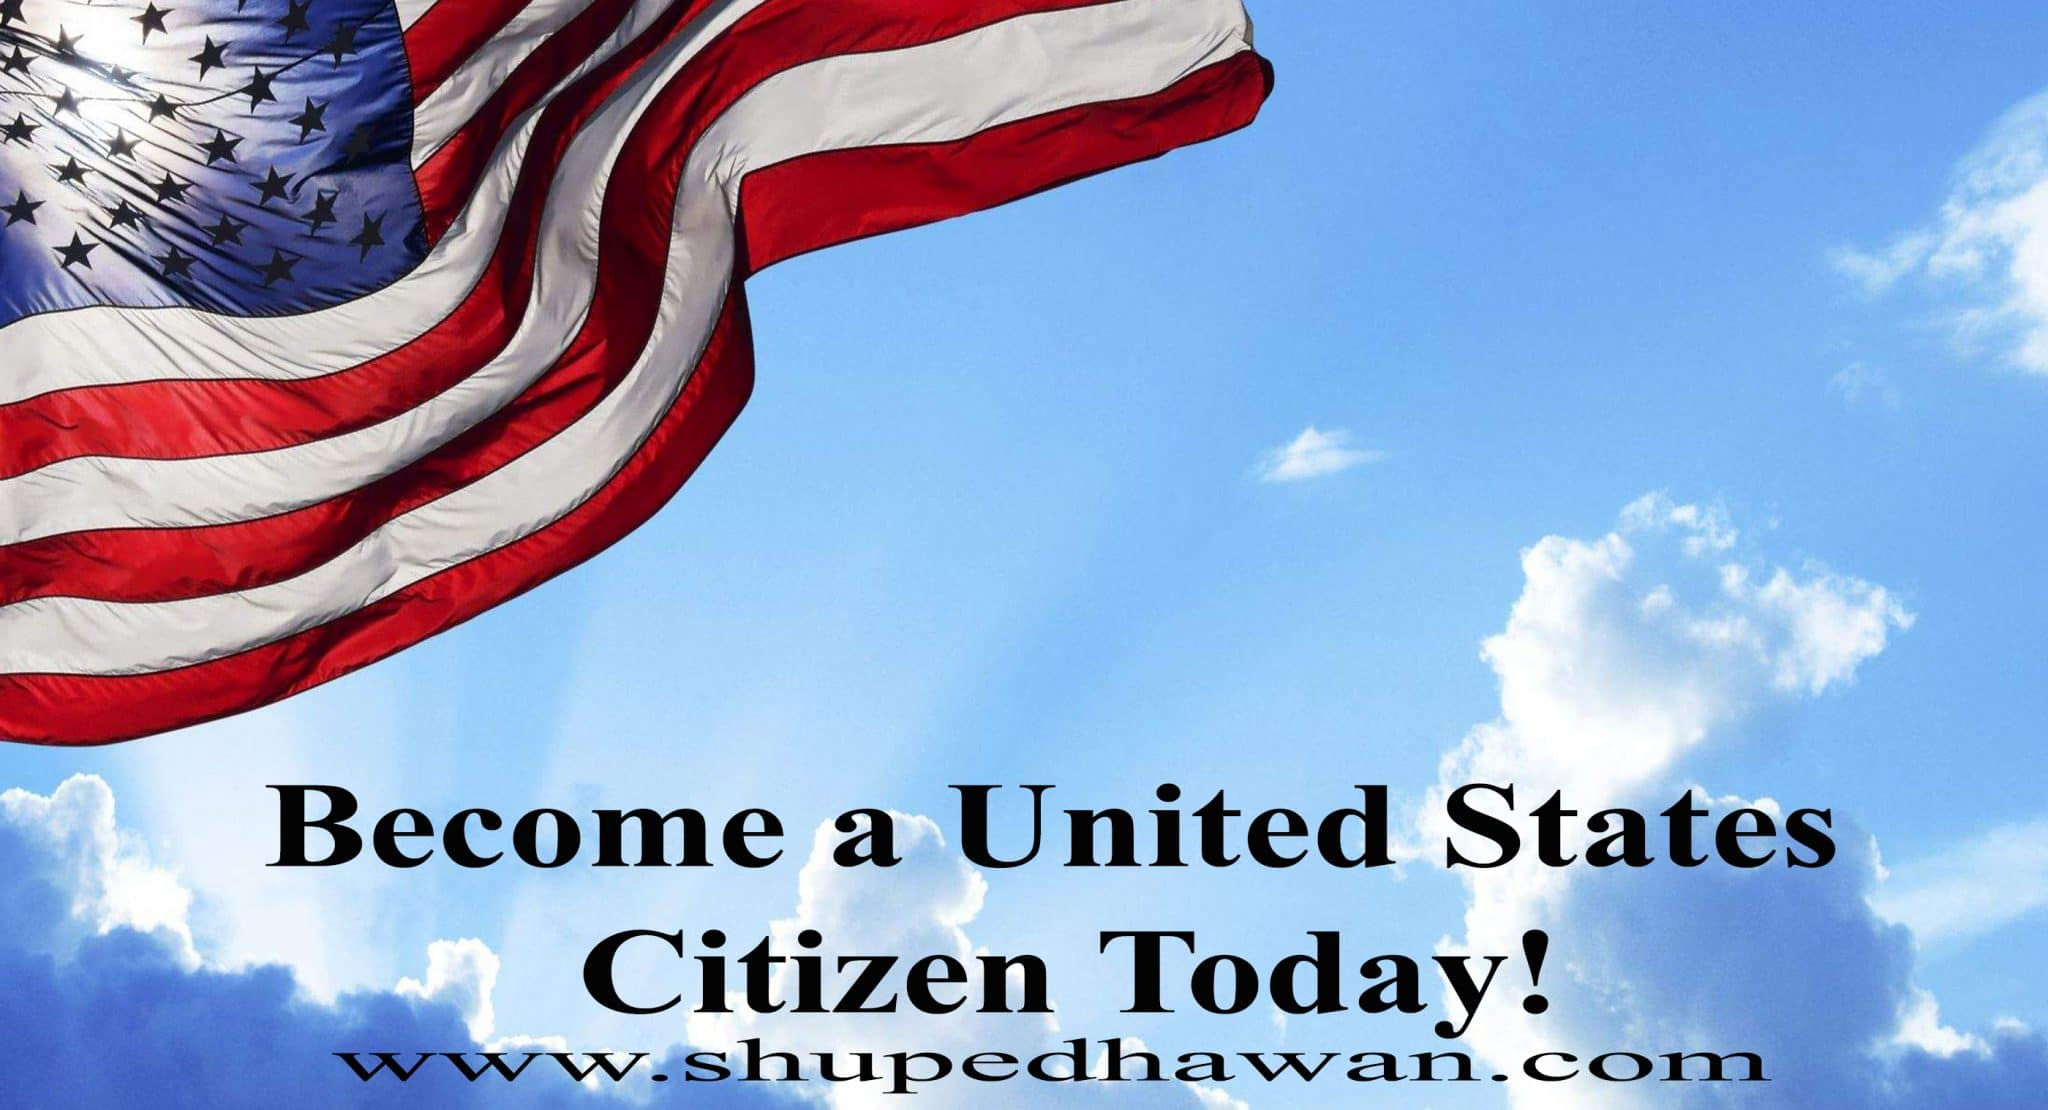 Become a United States Citizen